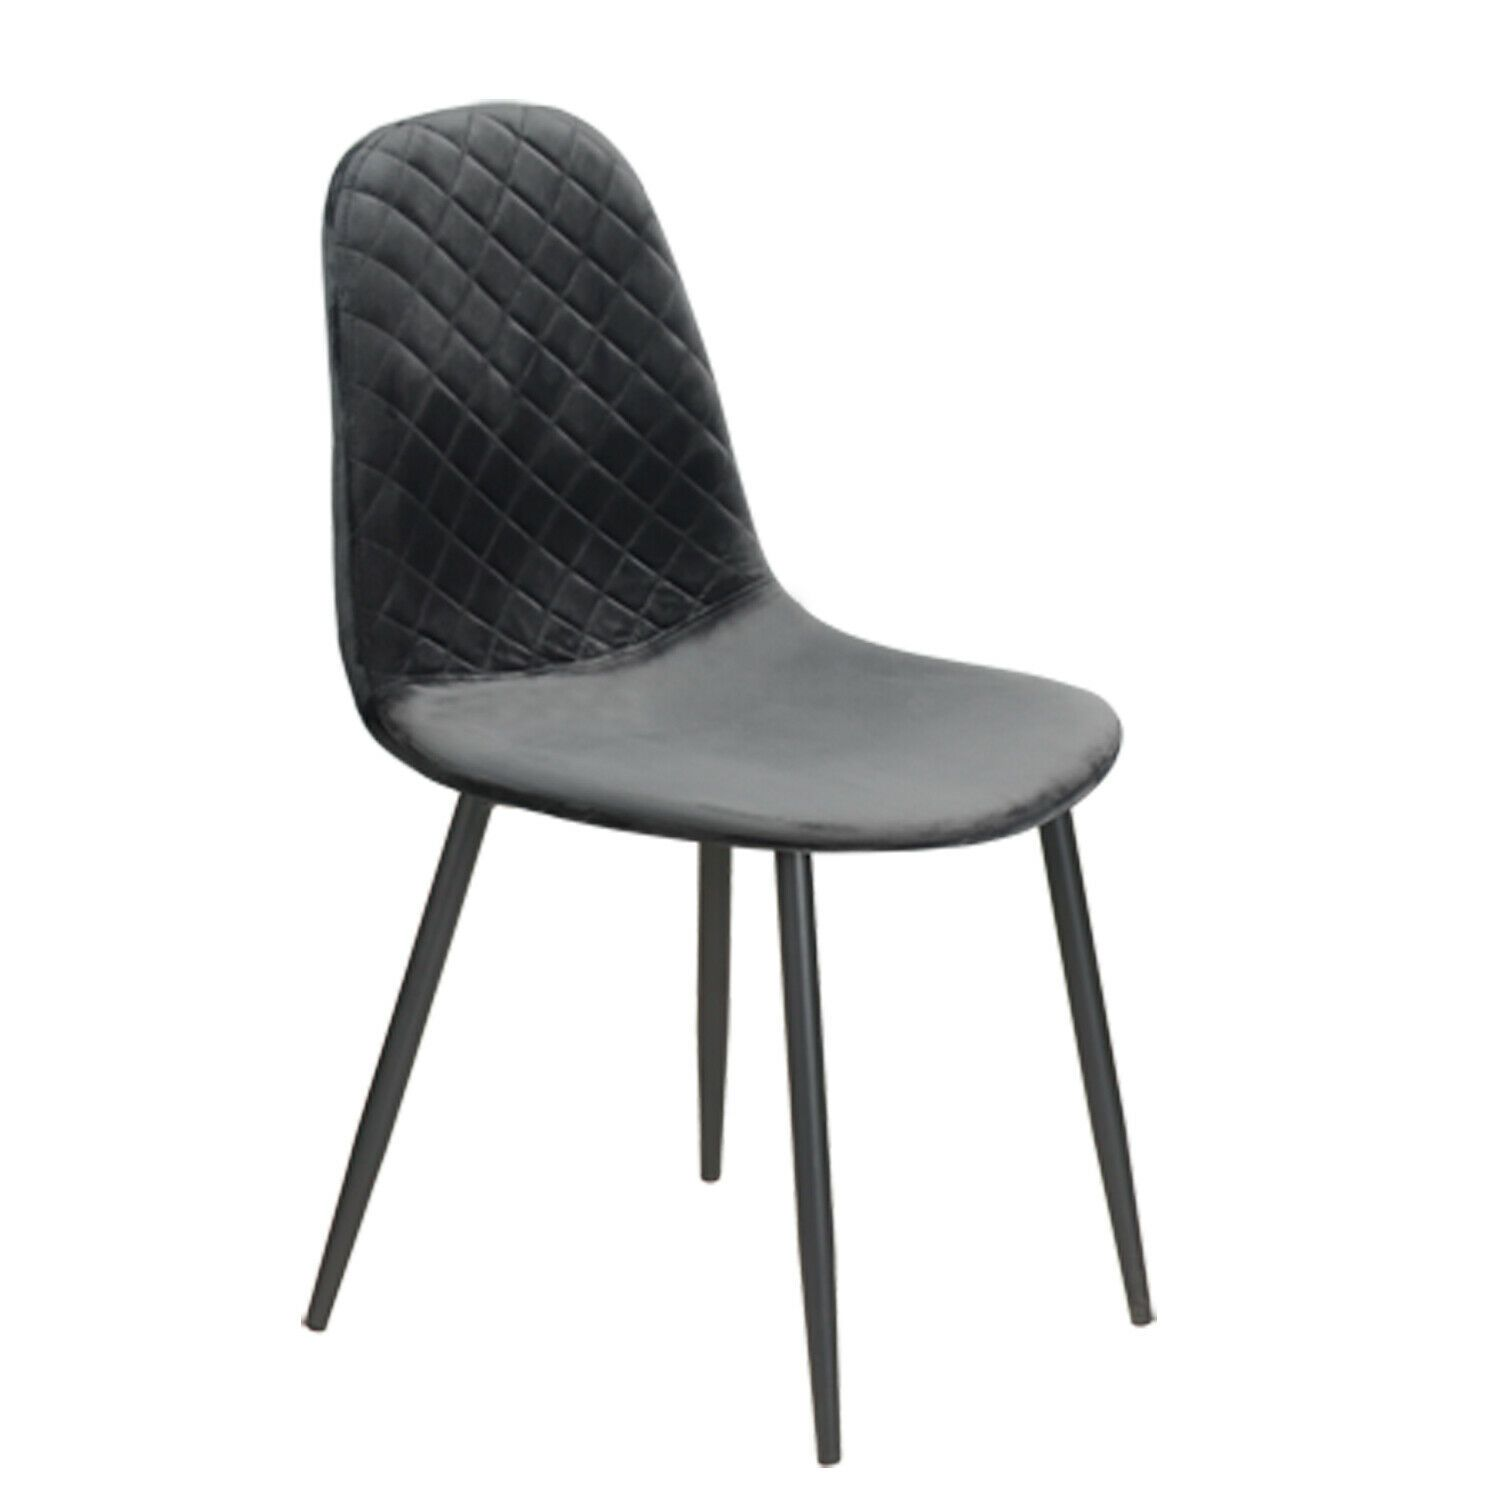 Smoke Grey Diamond Velvet Alfie Scandi Eames Style Dining Chair Black Metal Leg - Pebble & Leaf HomeFurniture